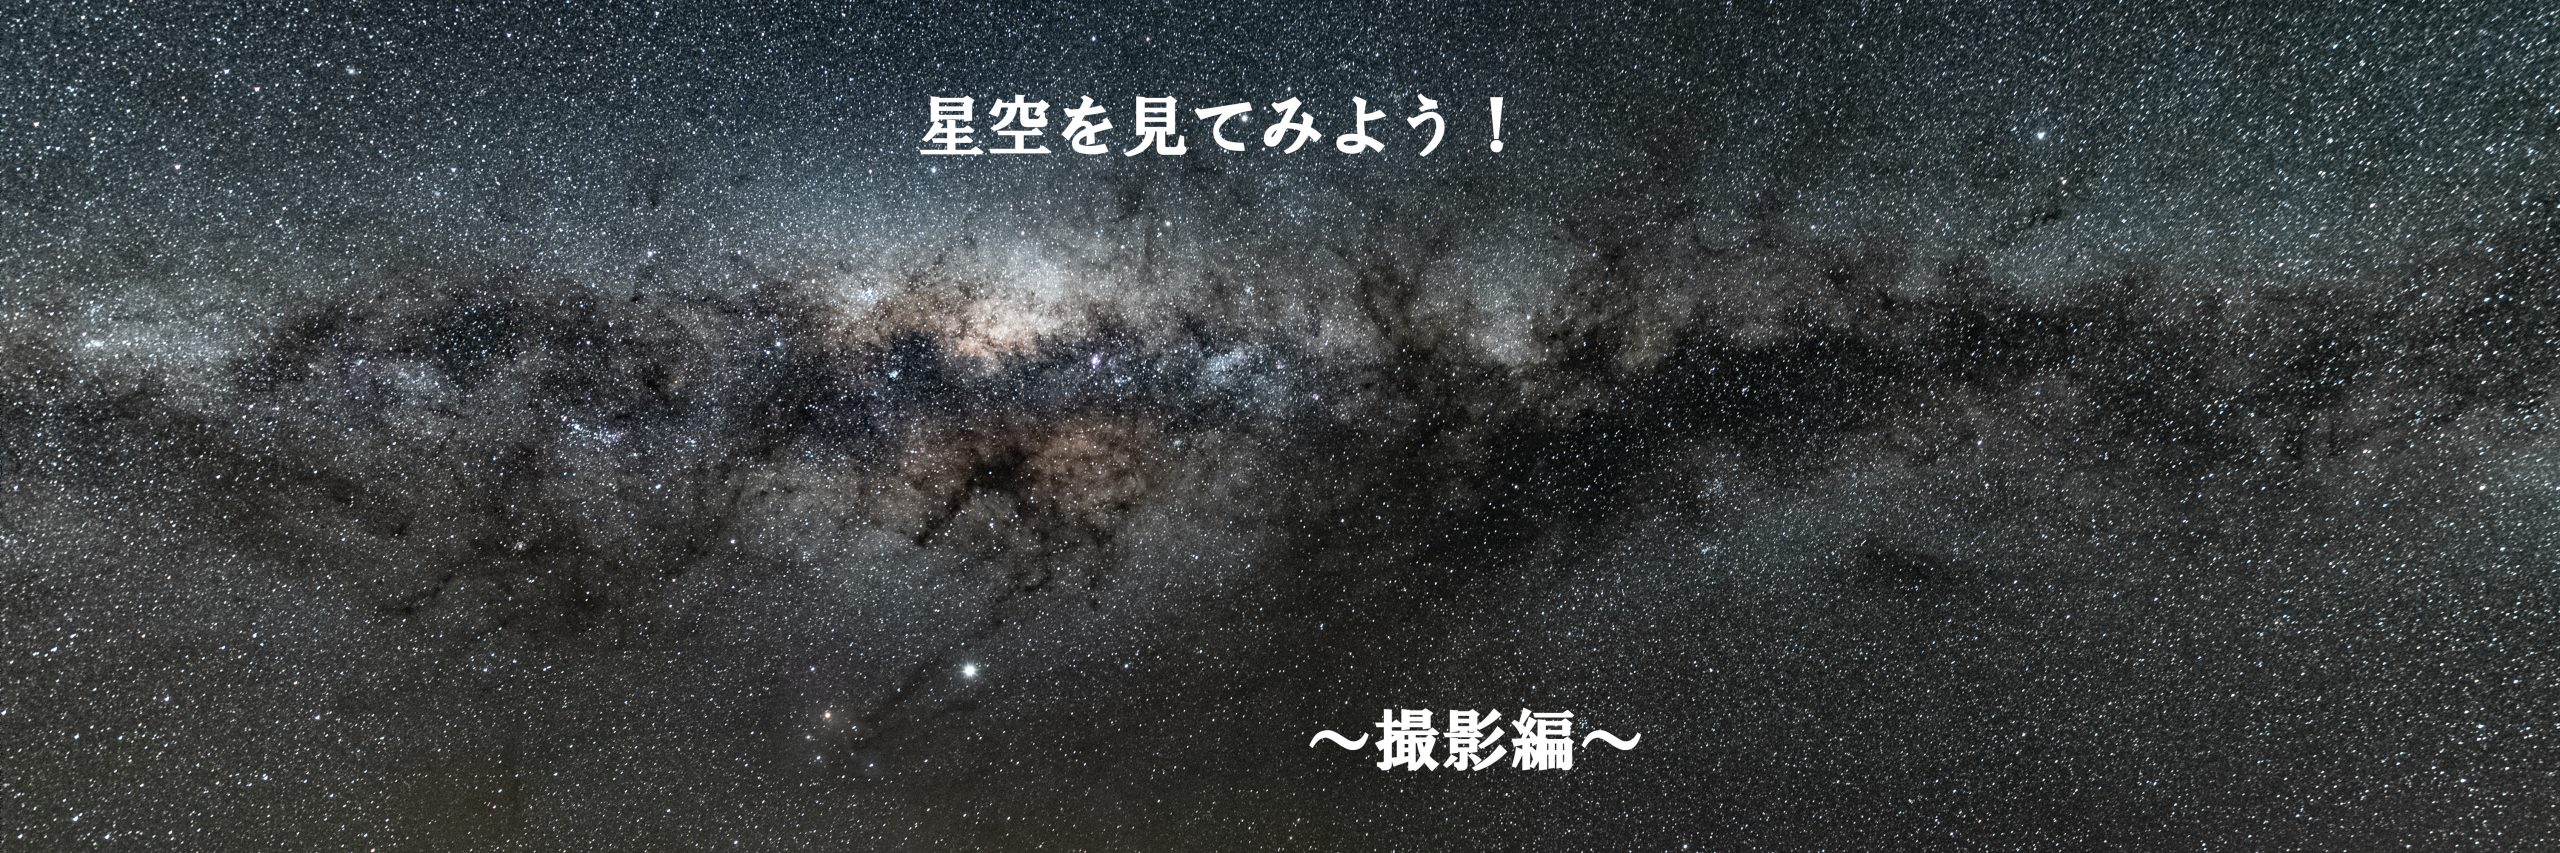 【Wish Upon a Star】星空を見てみよう!!~撮影編~